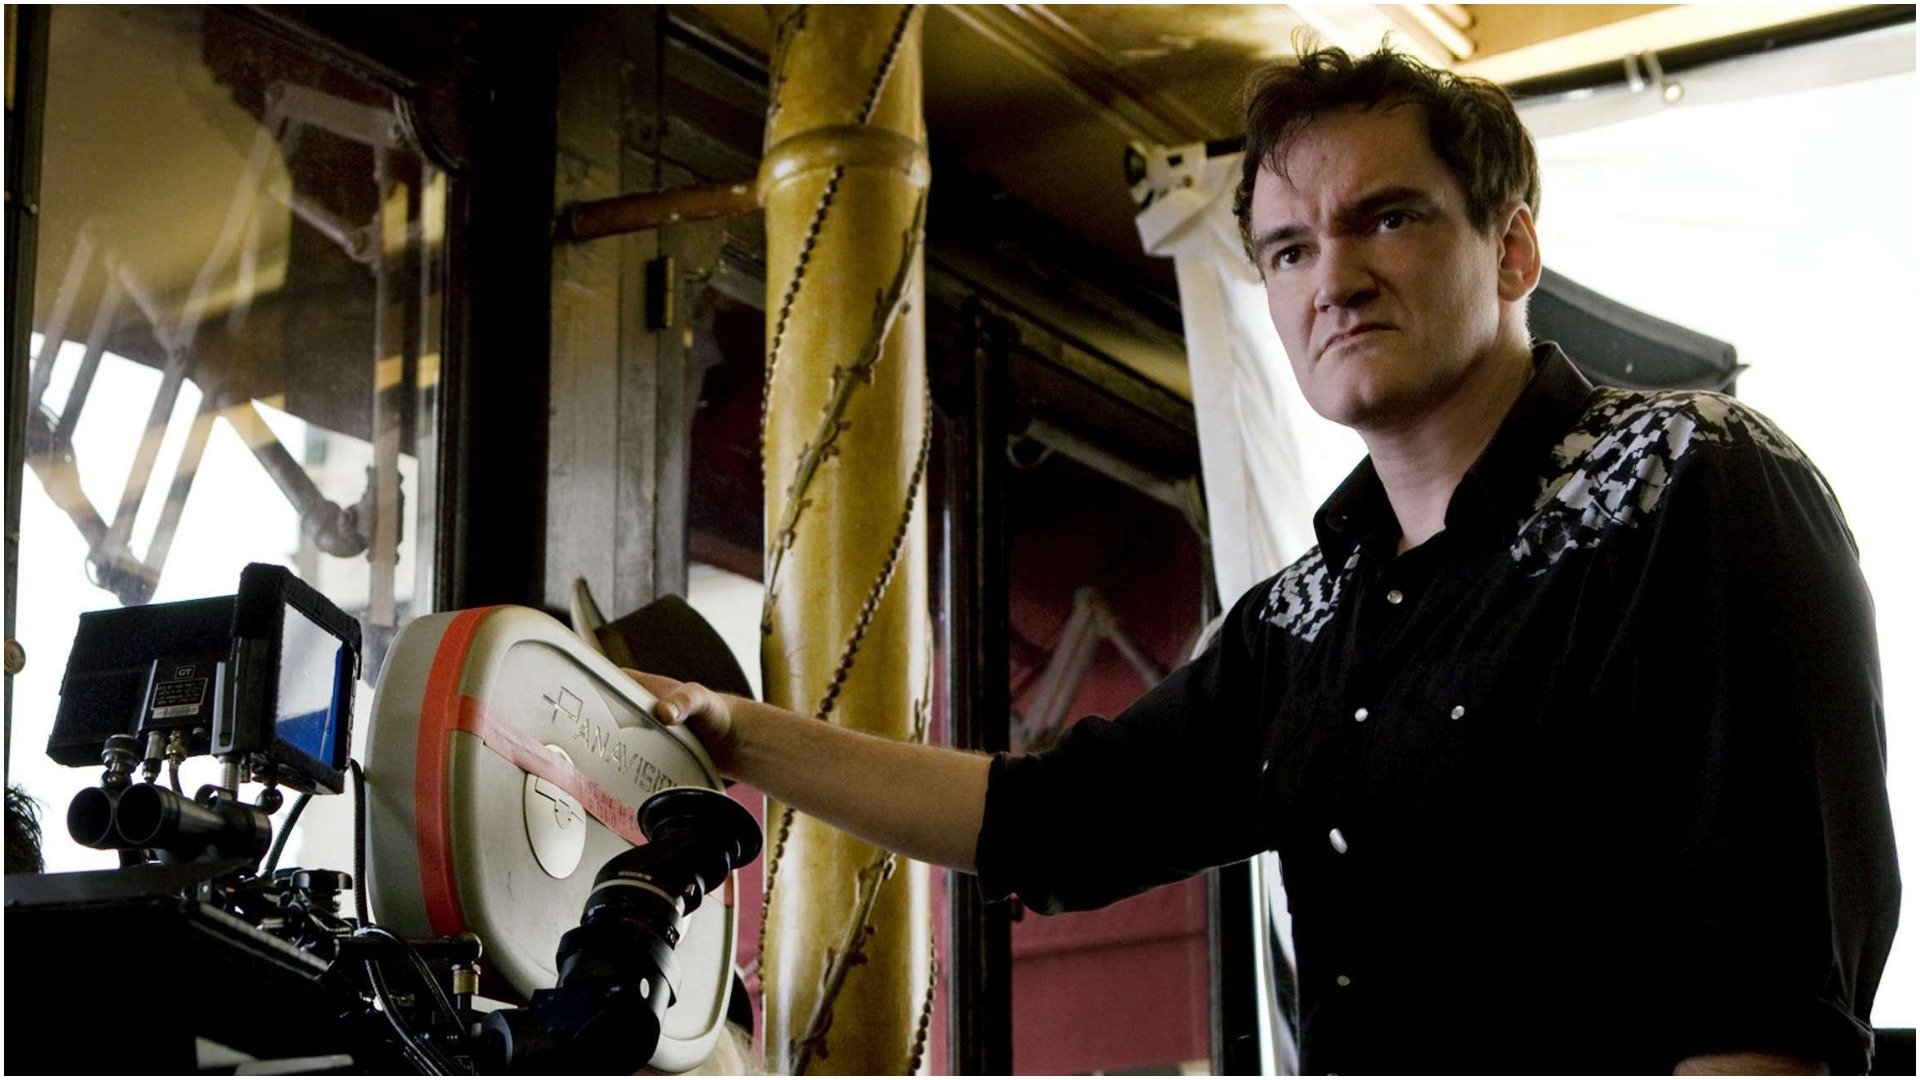 mKs8BFcdbmBmAH6pBMceHB 20 Things You Probably Didn't Know About Quentin Tarantino